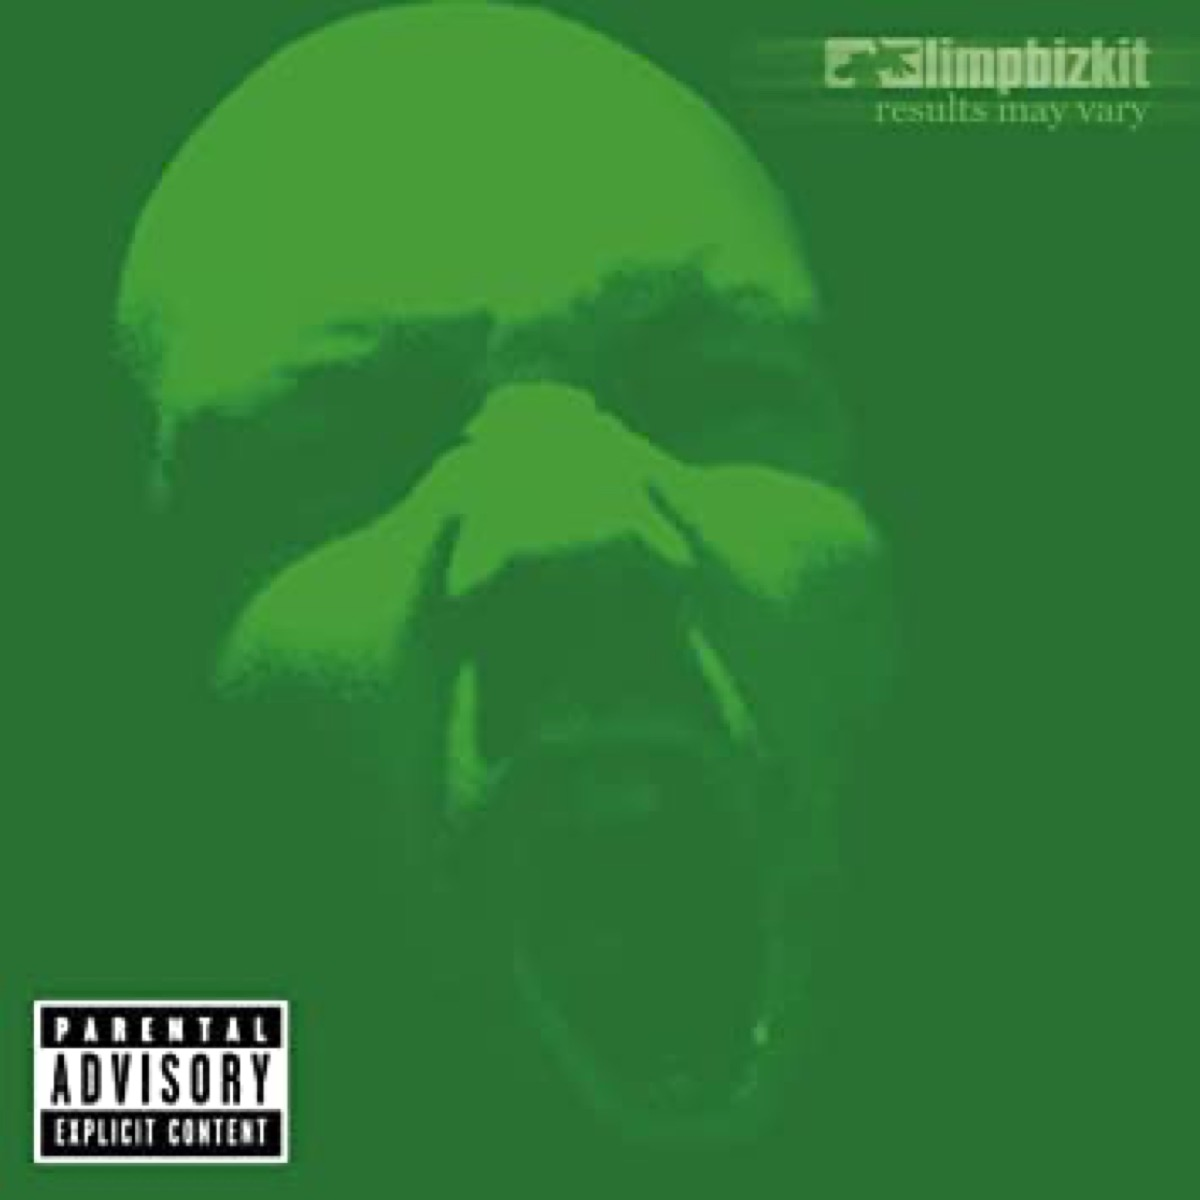 """The album cover of """"Results May Vary"""" by Limp Bizkit"""